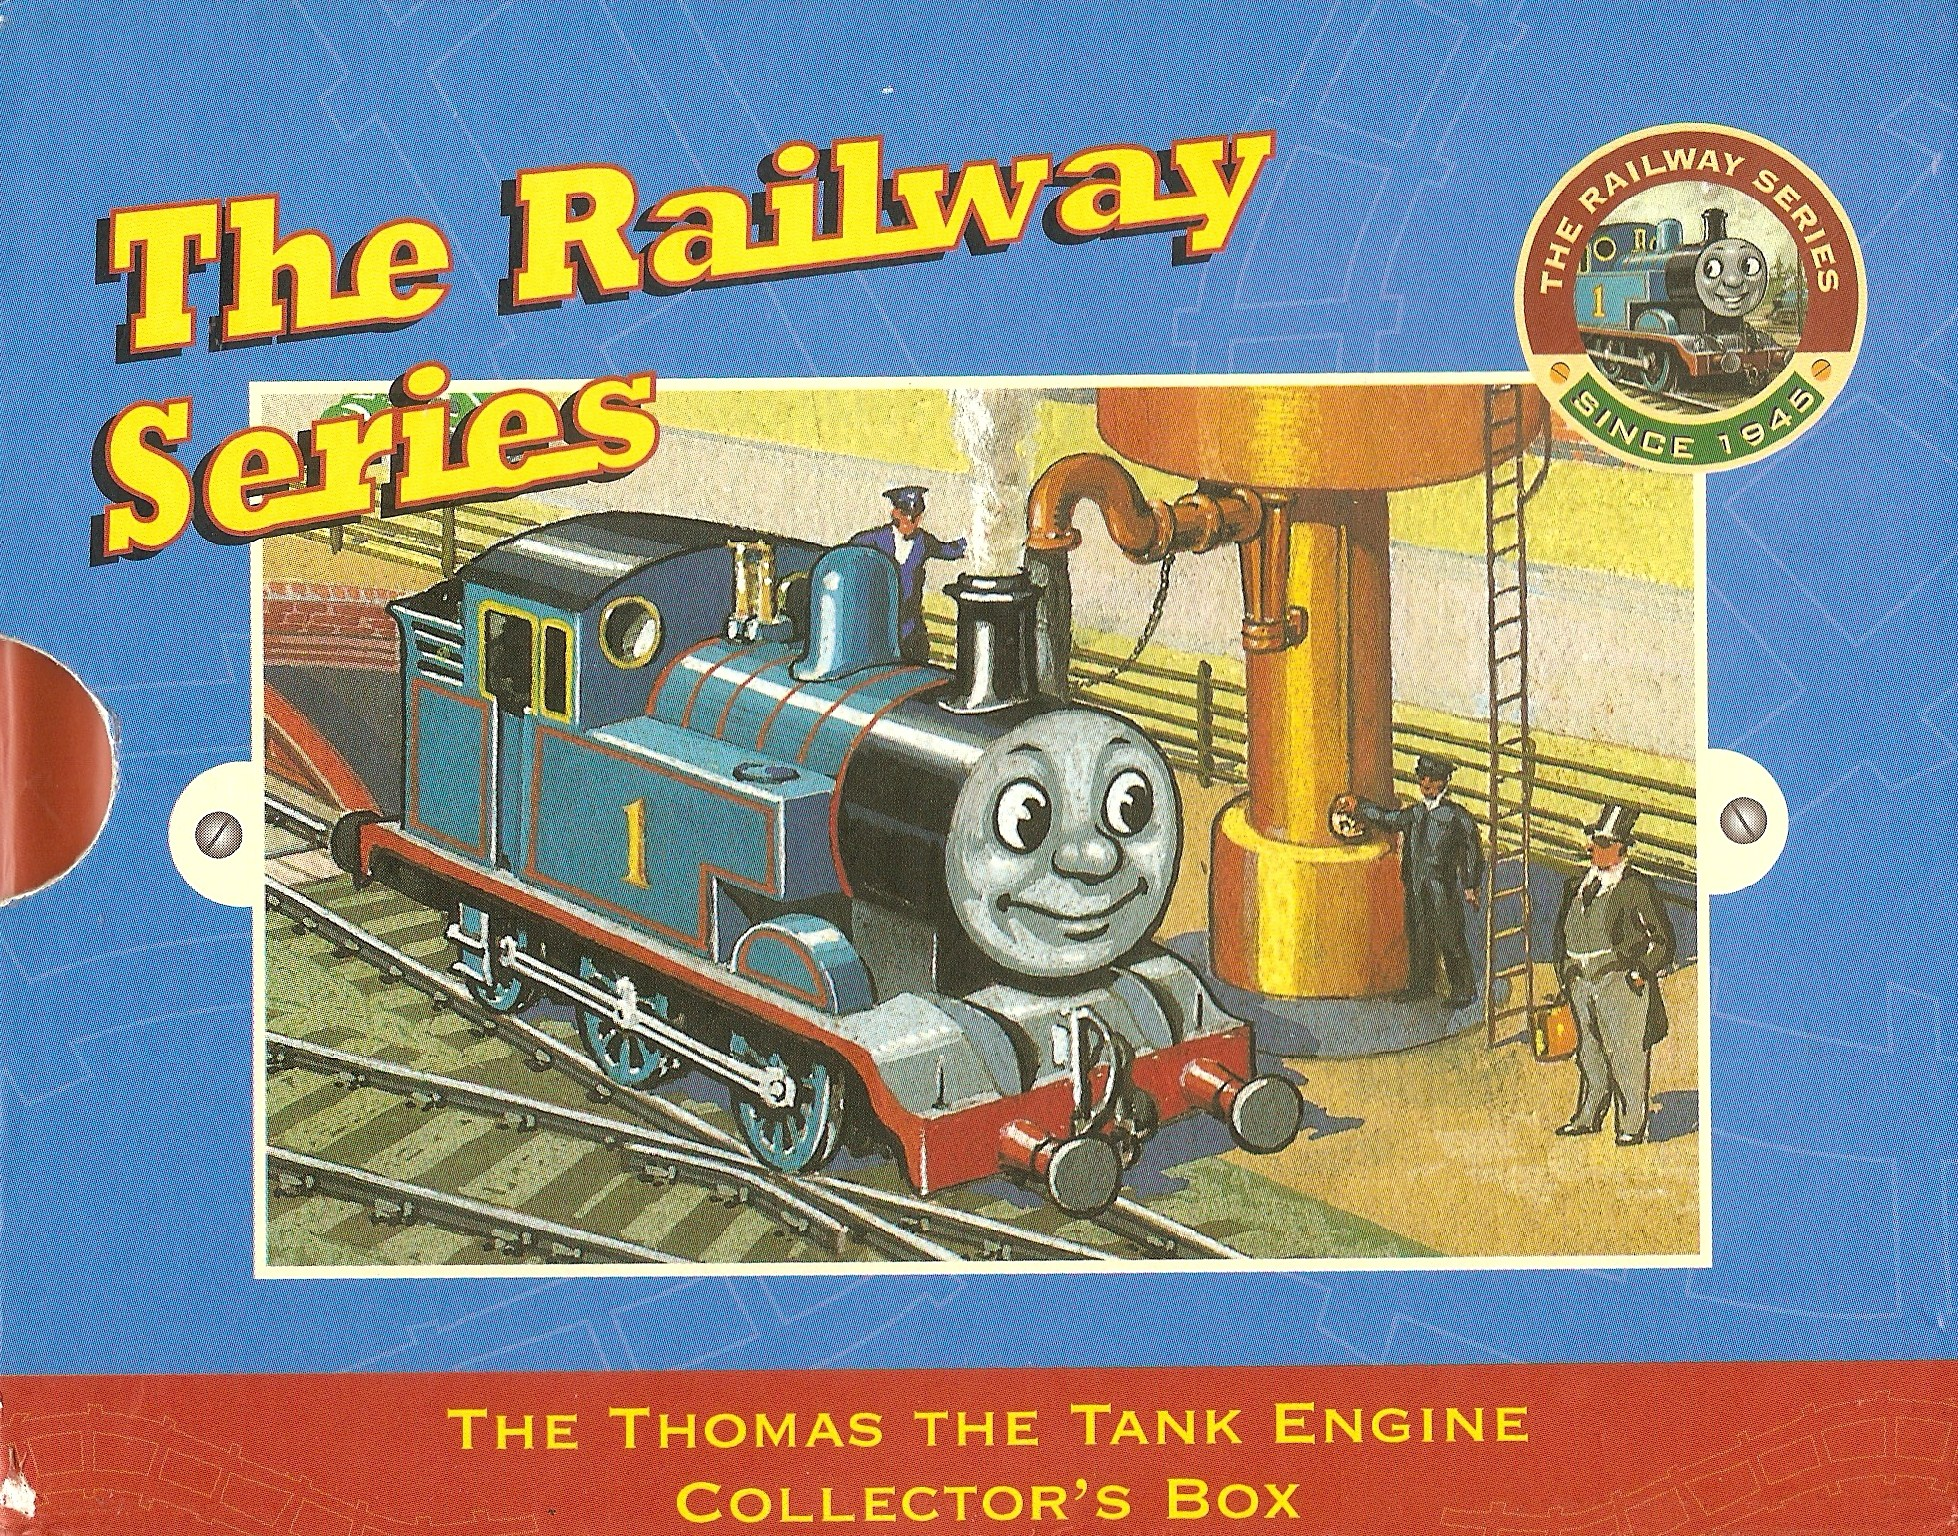 The Thomas the Tank Engine Collector's Box